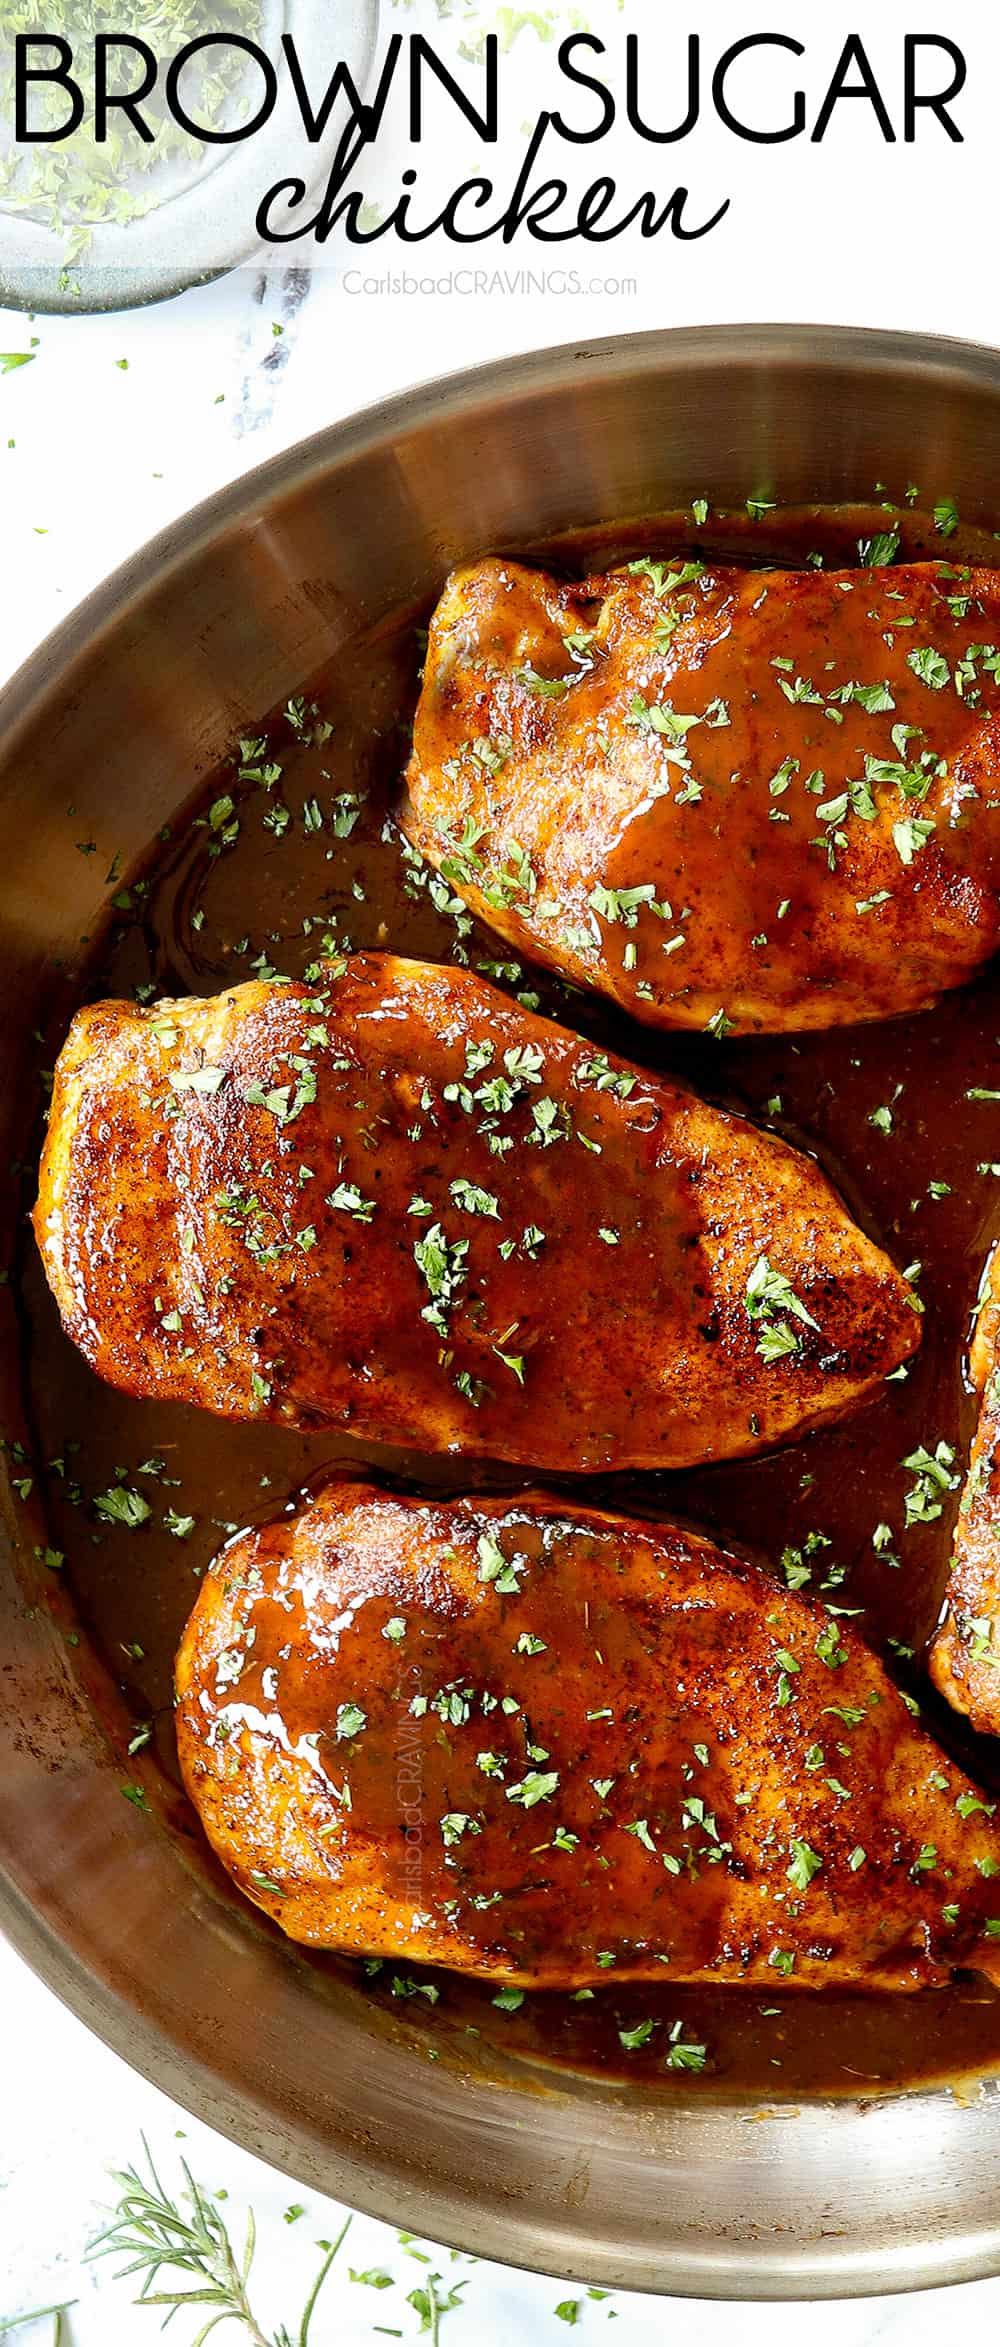 up close top view of garlic brown sugar chicken in a stainless steel skillet